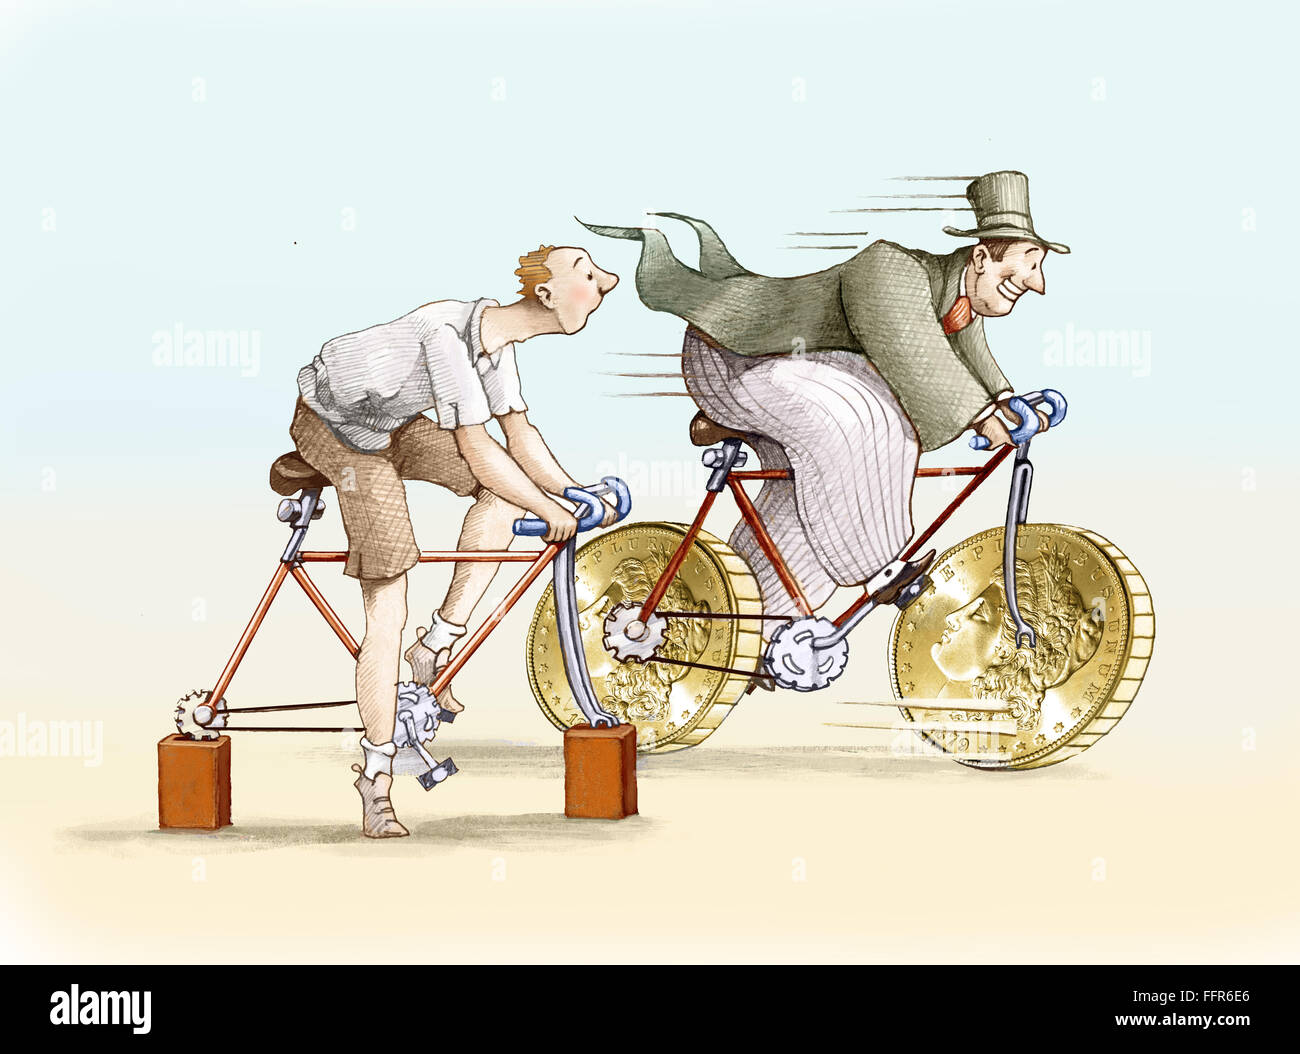 The bike has rich big wheels in the form of currency, the bike has poor brick instead of wheels - Stock Image